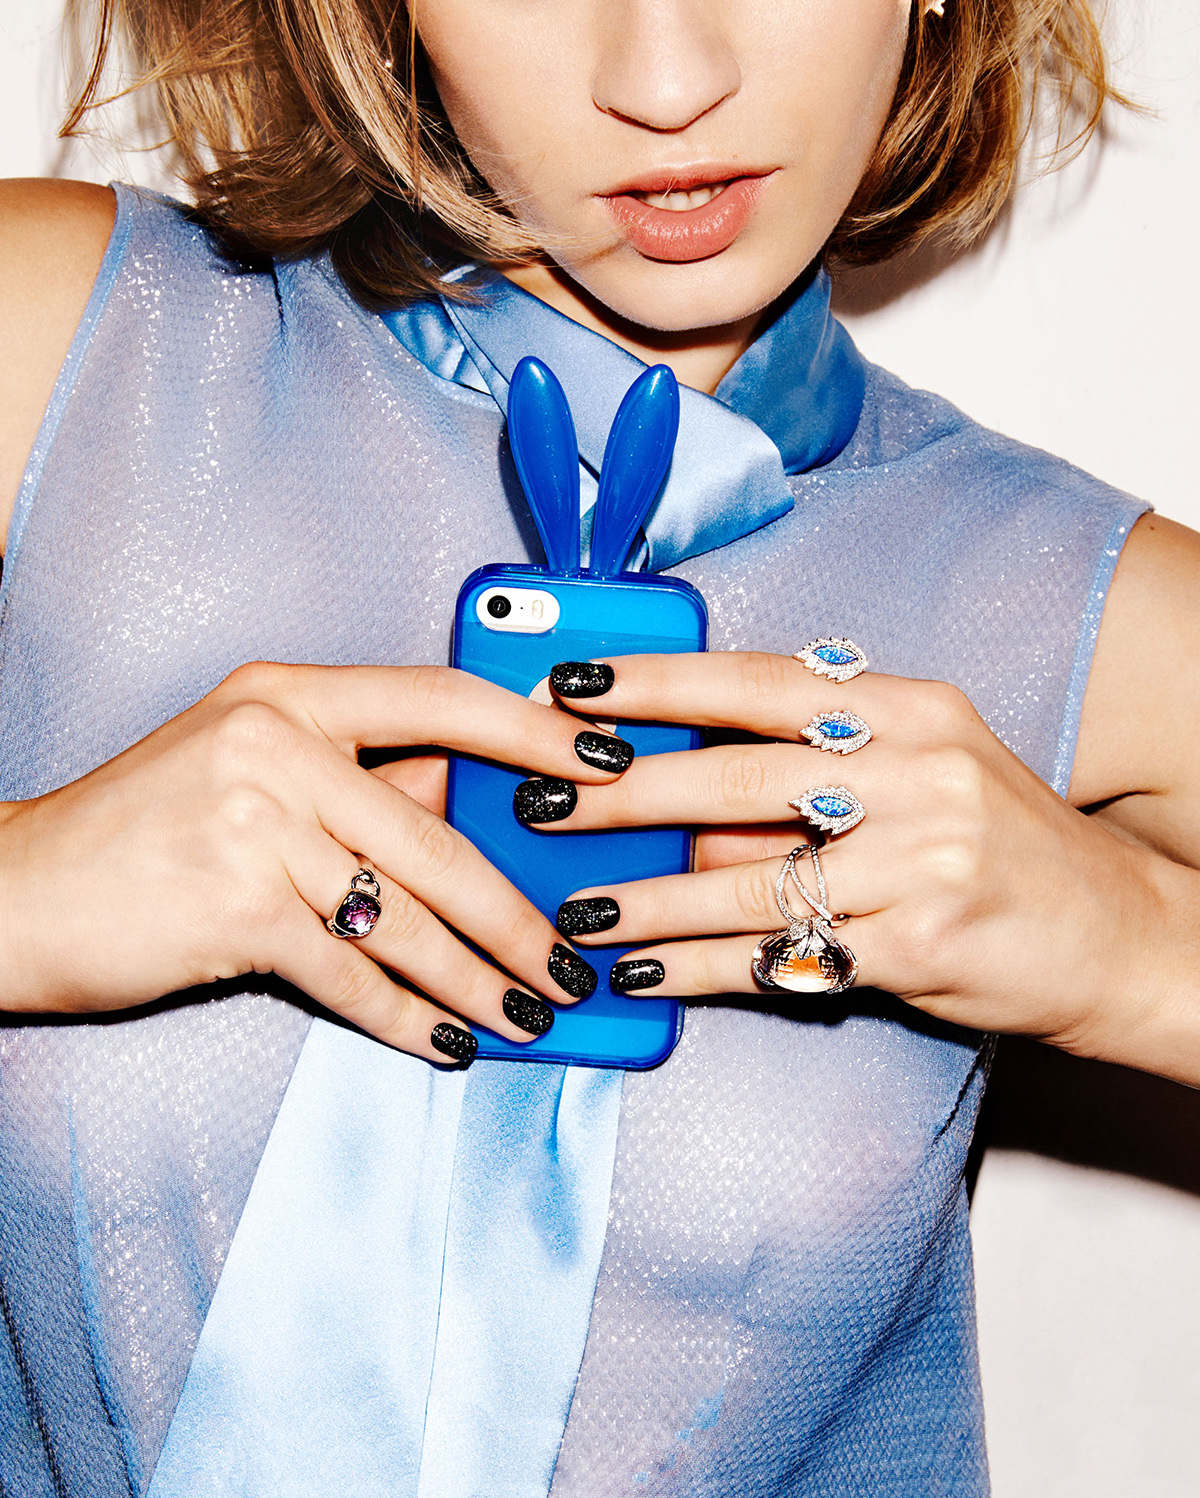 woman taking selfie with blue phone case